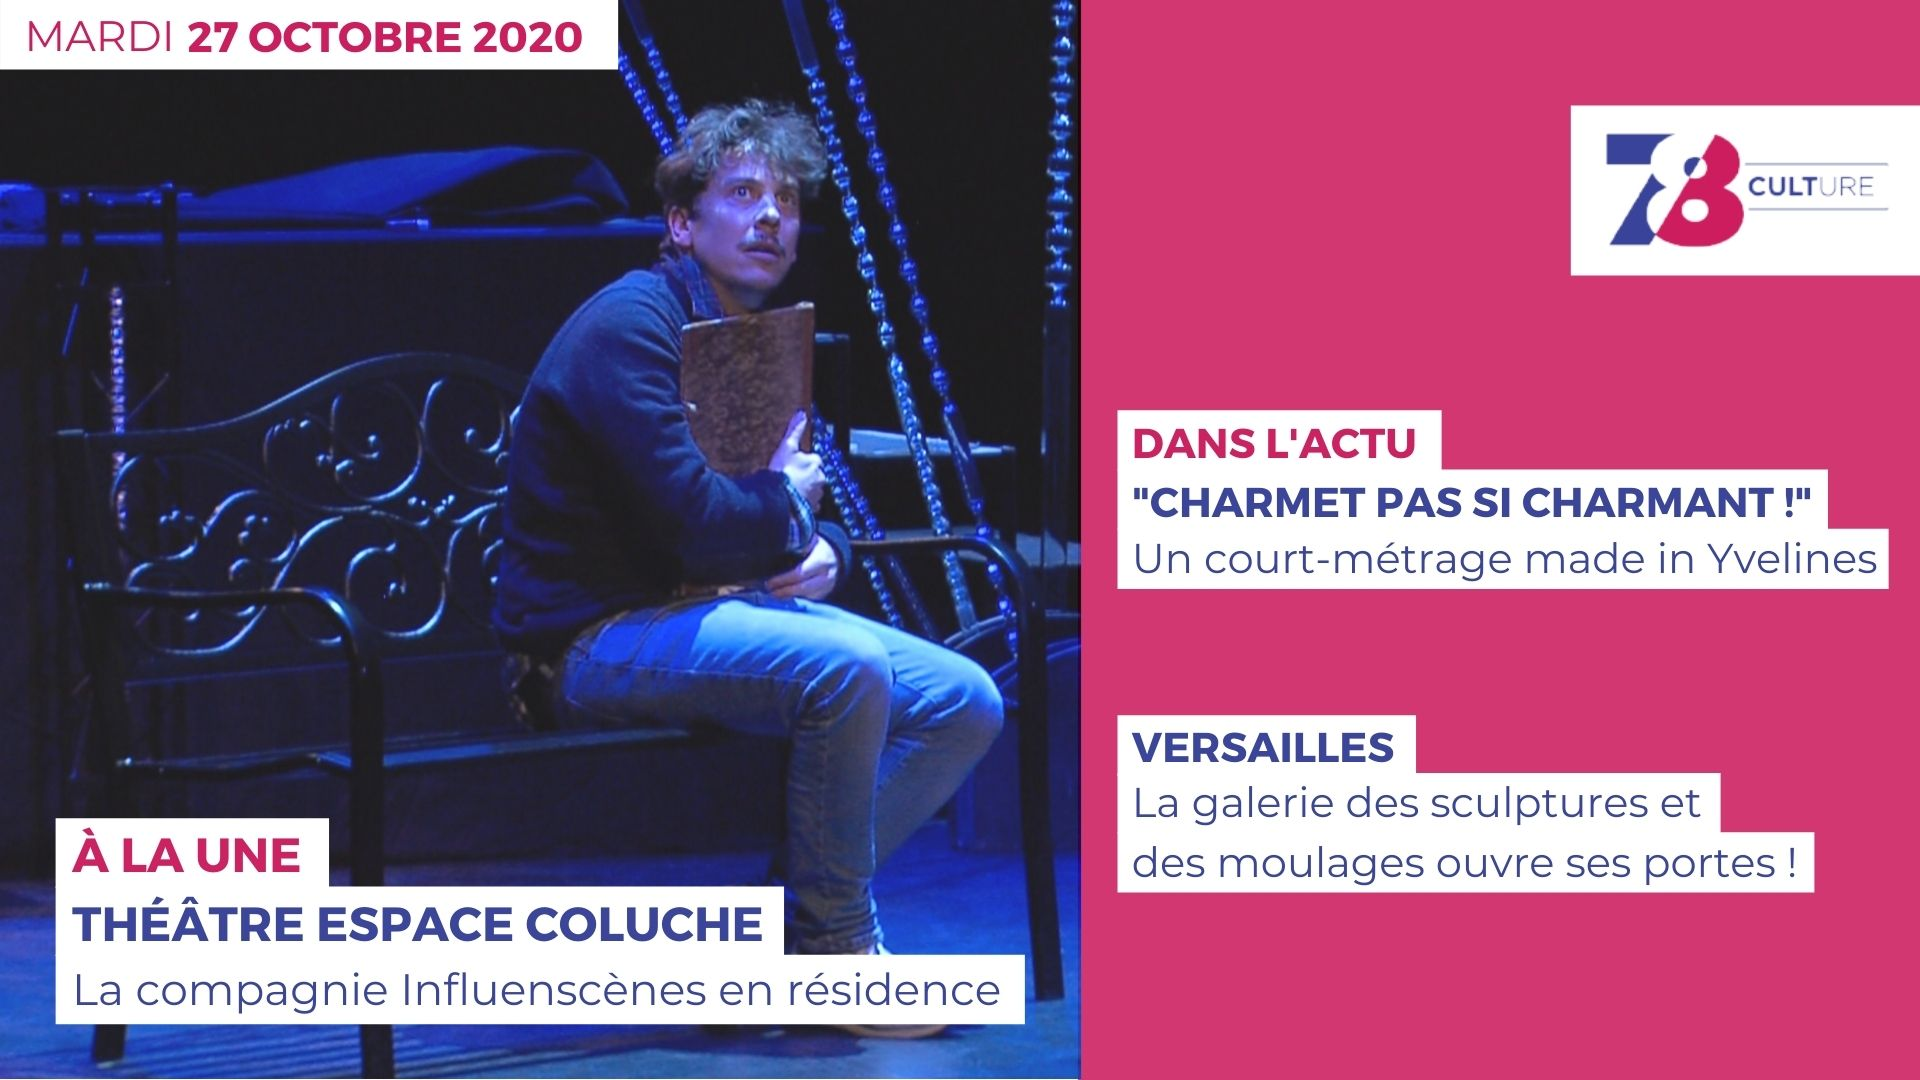 7/8 Culture. Emission du 27 octobre 2020